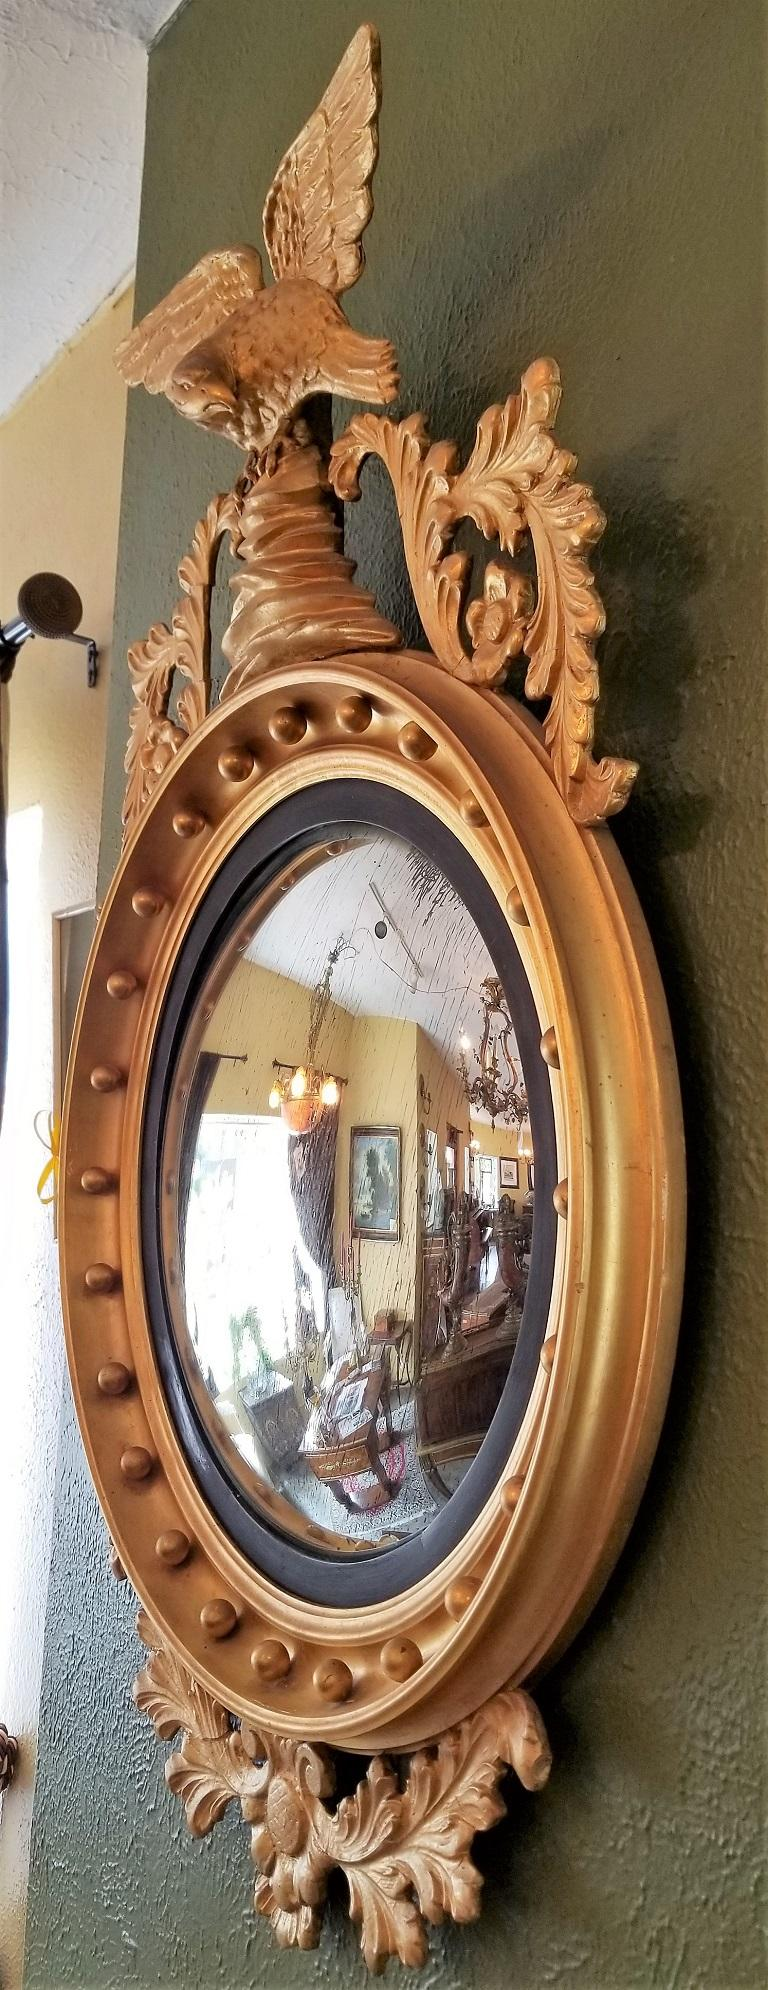 Early 19th Century Federal Eagle Wood and Gesso Gilded Convex Mirror For Sale 5